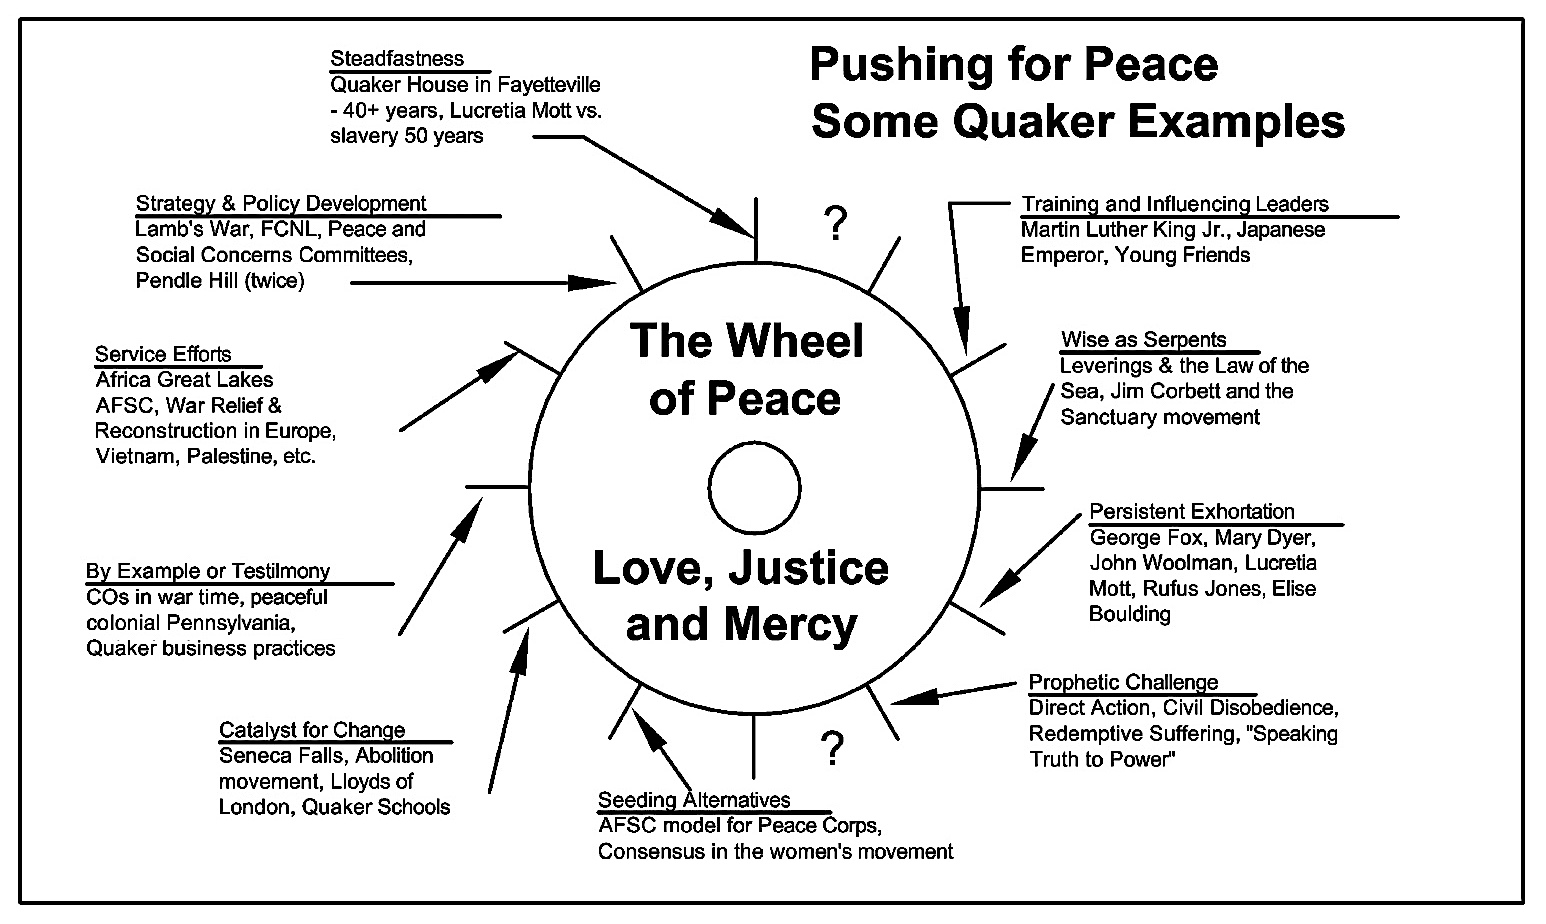 The Wheel of peace by Chuck Fager